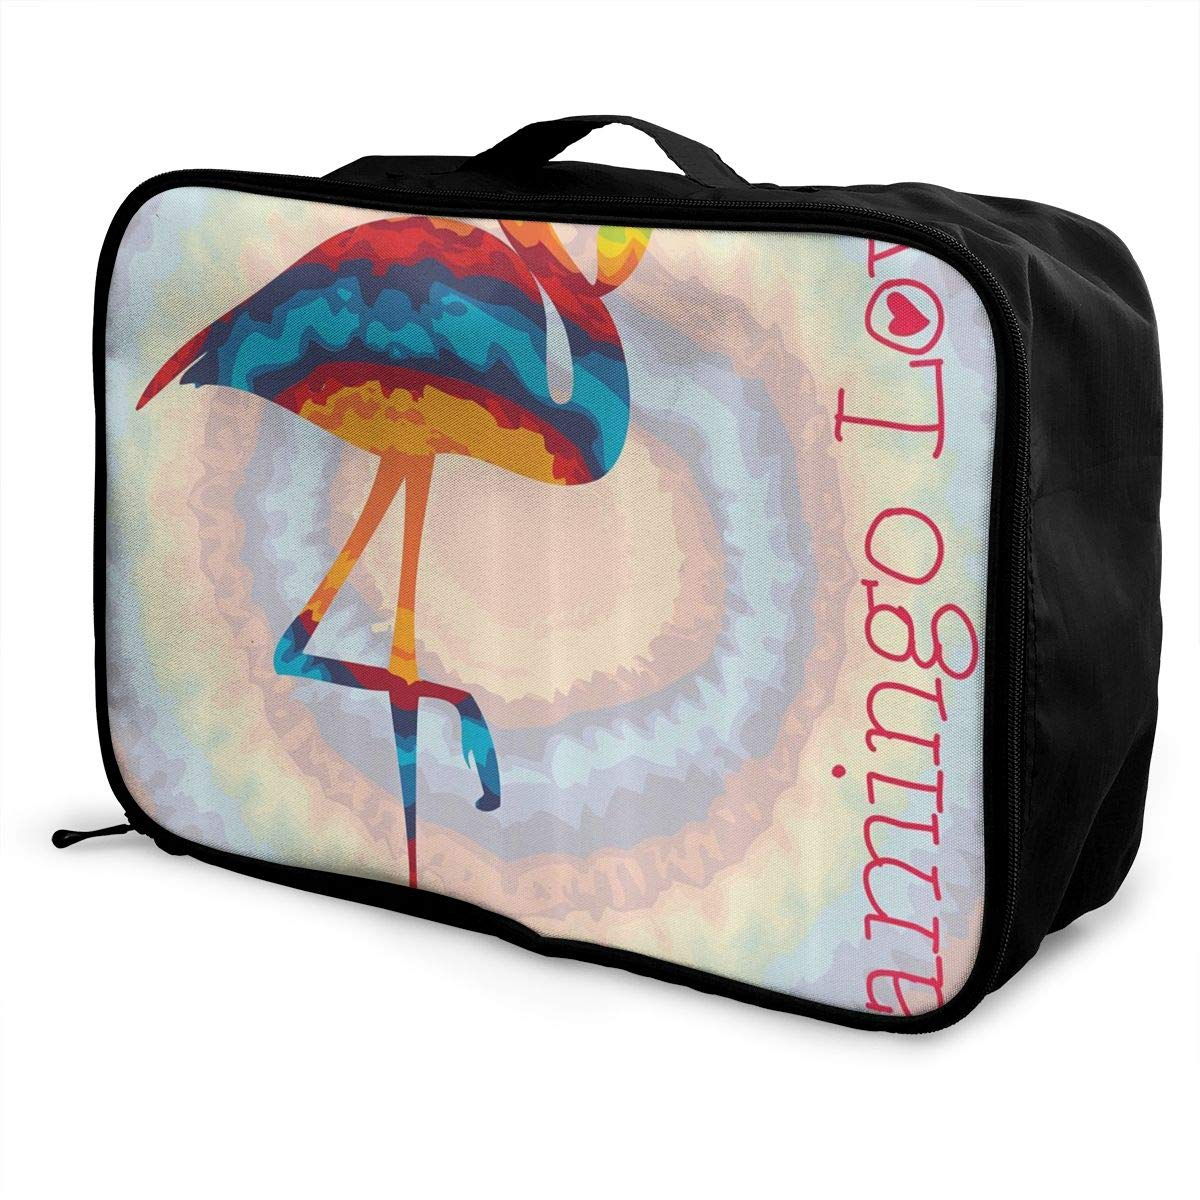 Flamingo Single Rainbow Color Tie Dye Travel Lightweight Waterproof Foldable Storage Carry Luggage Duffle Tote Bag Large Capacity In Trolley Handle Bags 6x11x15 Inch